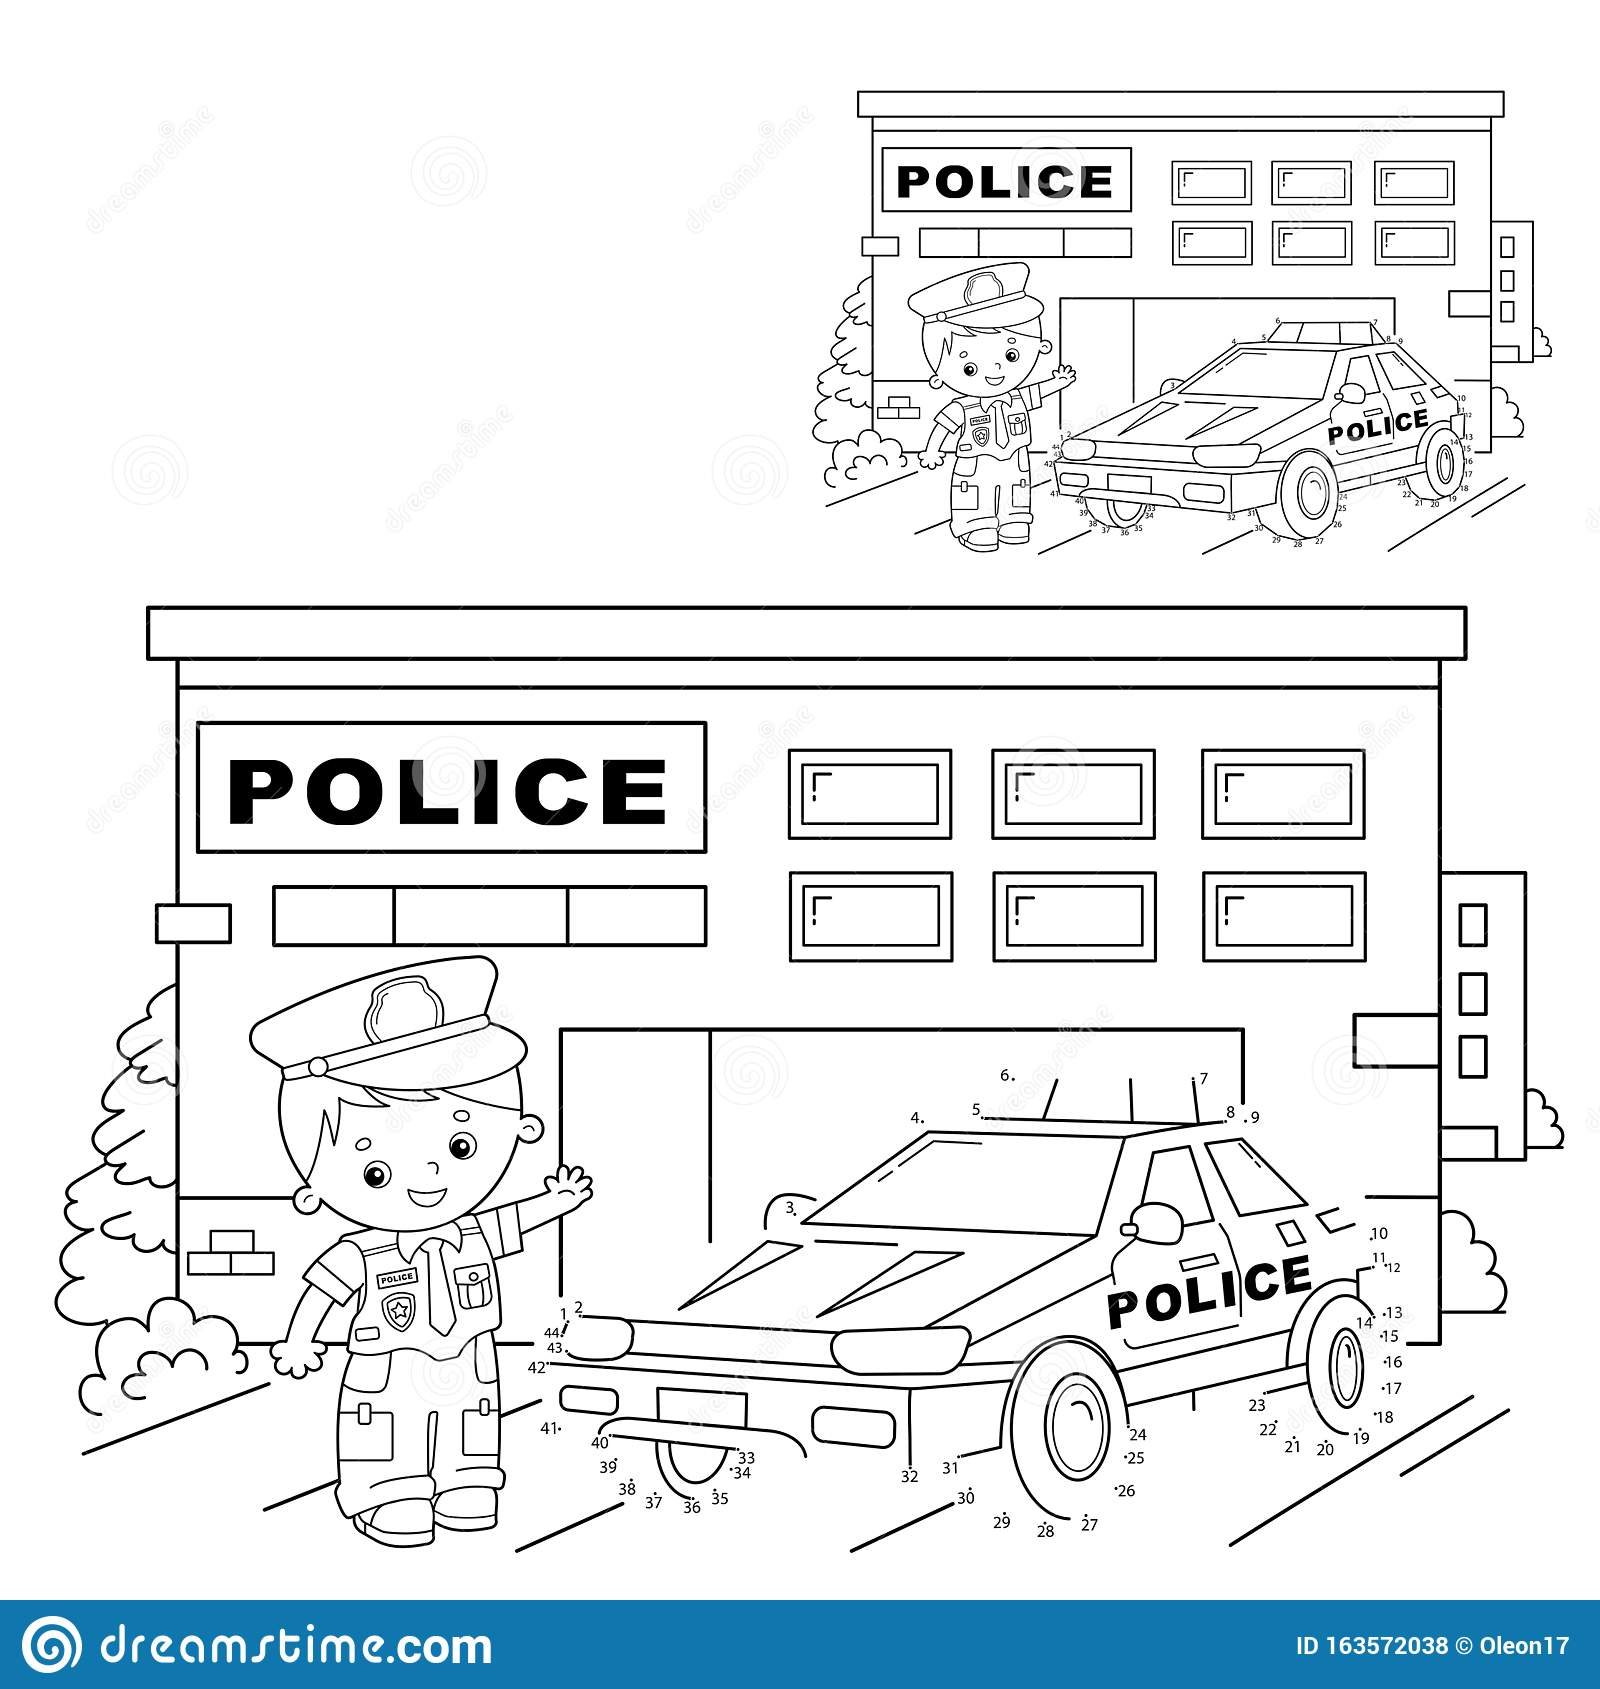 Educational Puzzle Game For Kids Numbers Game Police Car Coloring Page Outline Of Cartoon Policeman With Car Coloring Book For Stock Vector Illustration Of Paint Activity 163572038